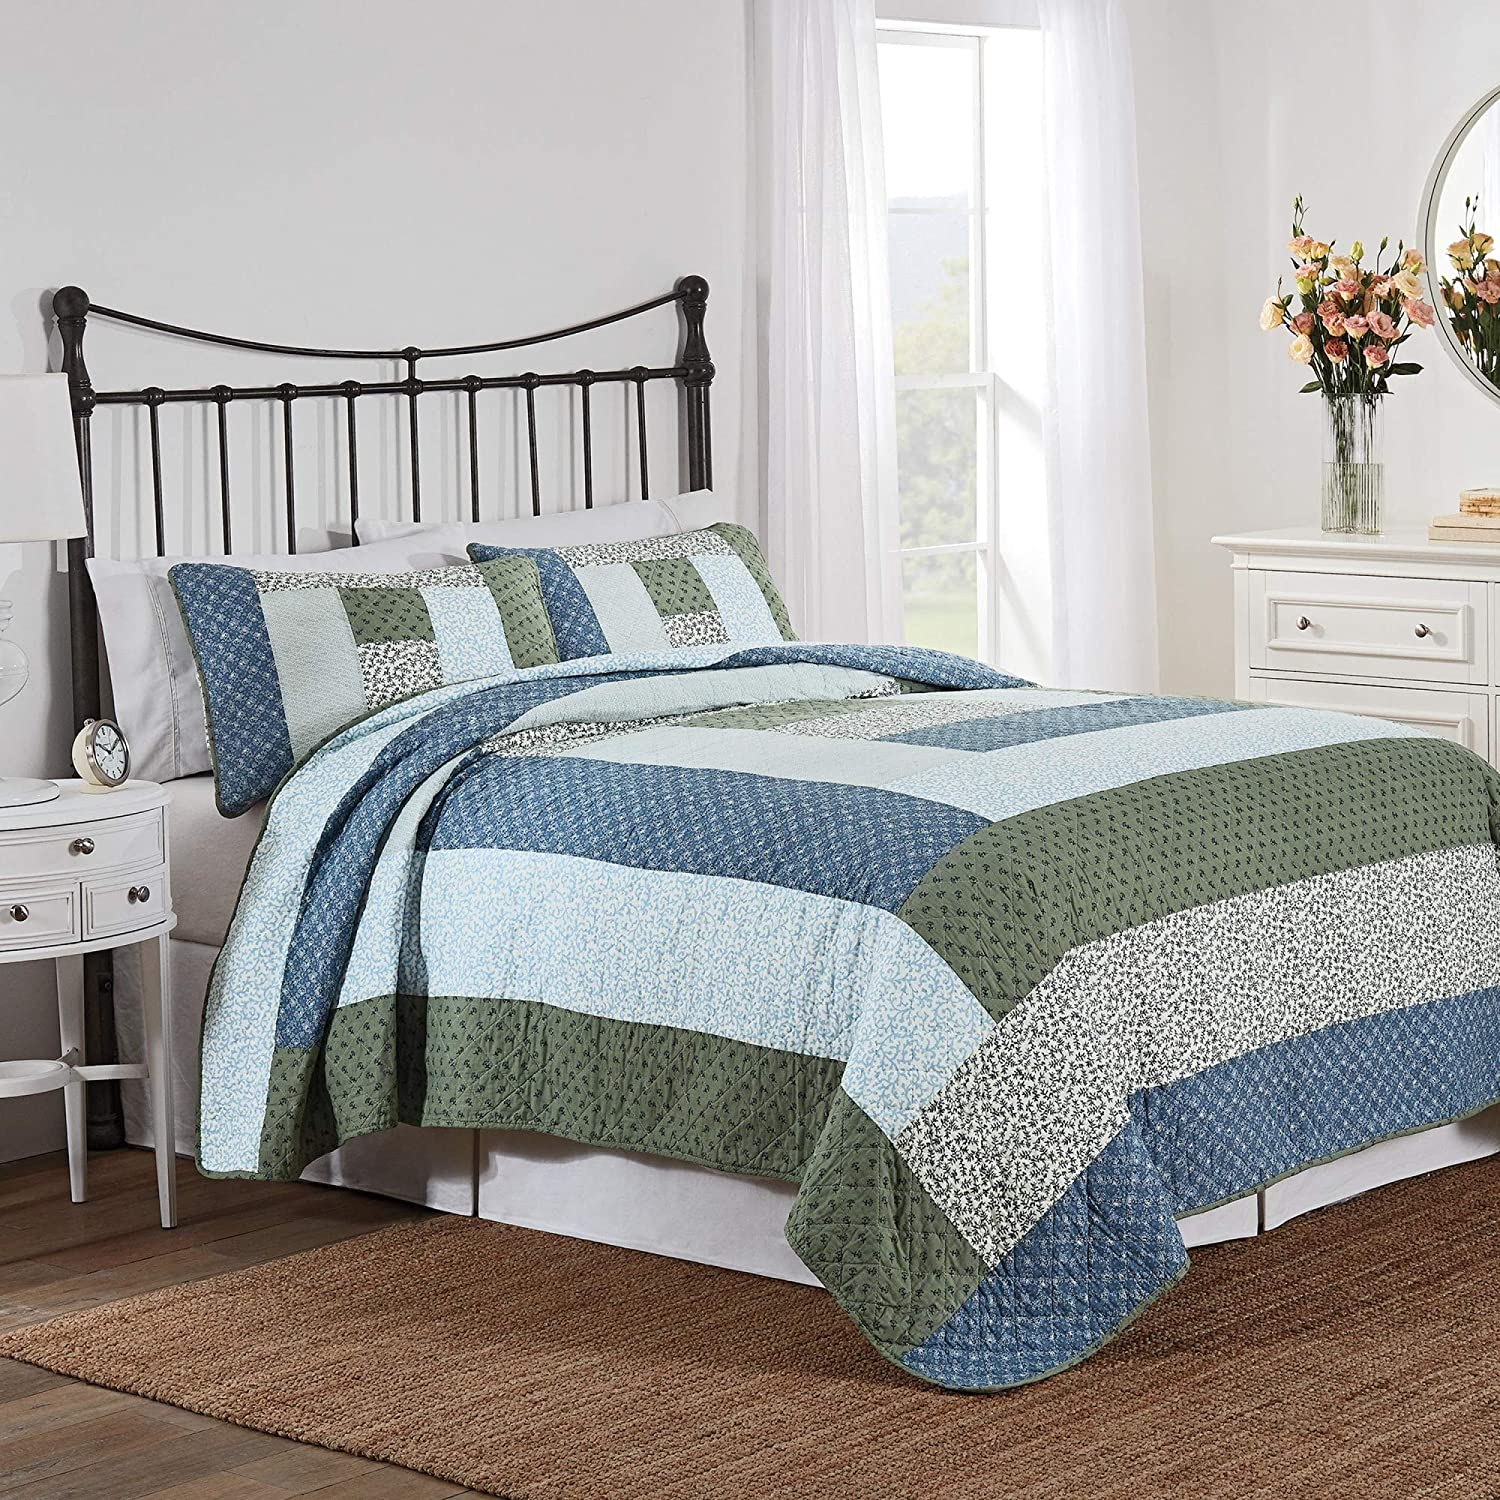 Nostalgia Home Leesa Quilt Set, Full/Queen, Blue Multi